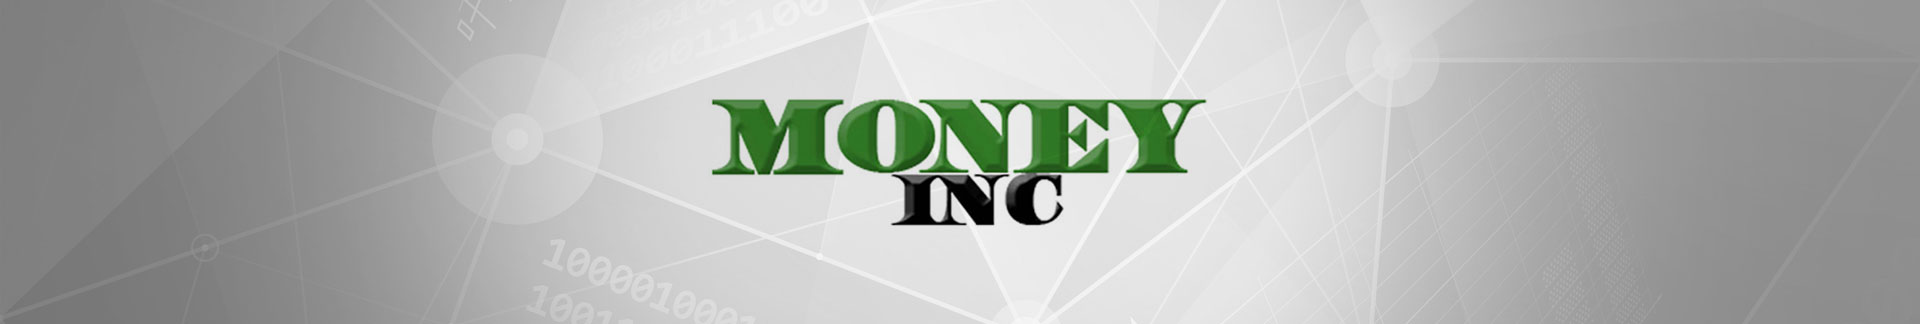 Money Inc news banner